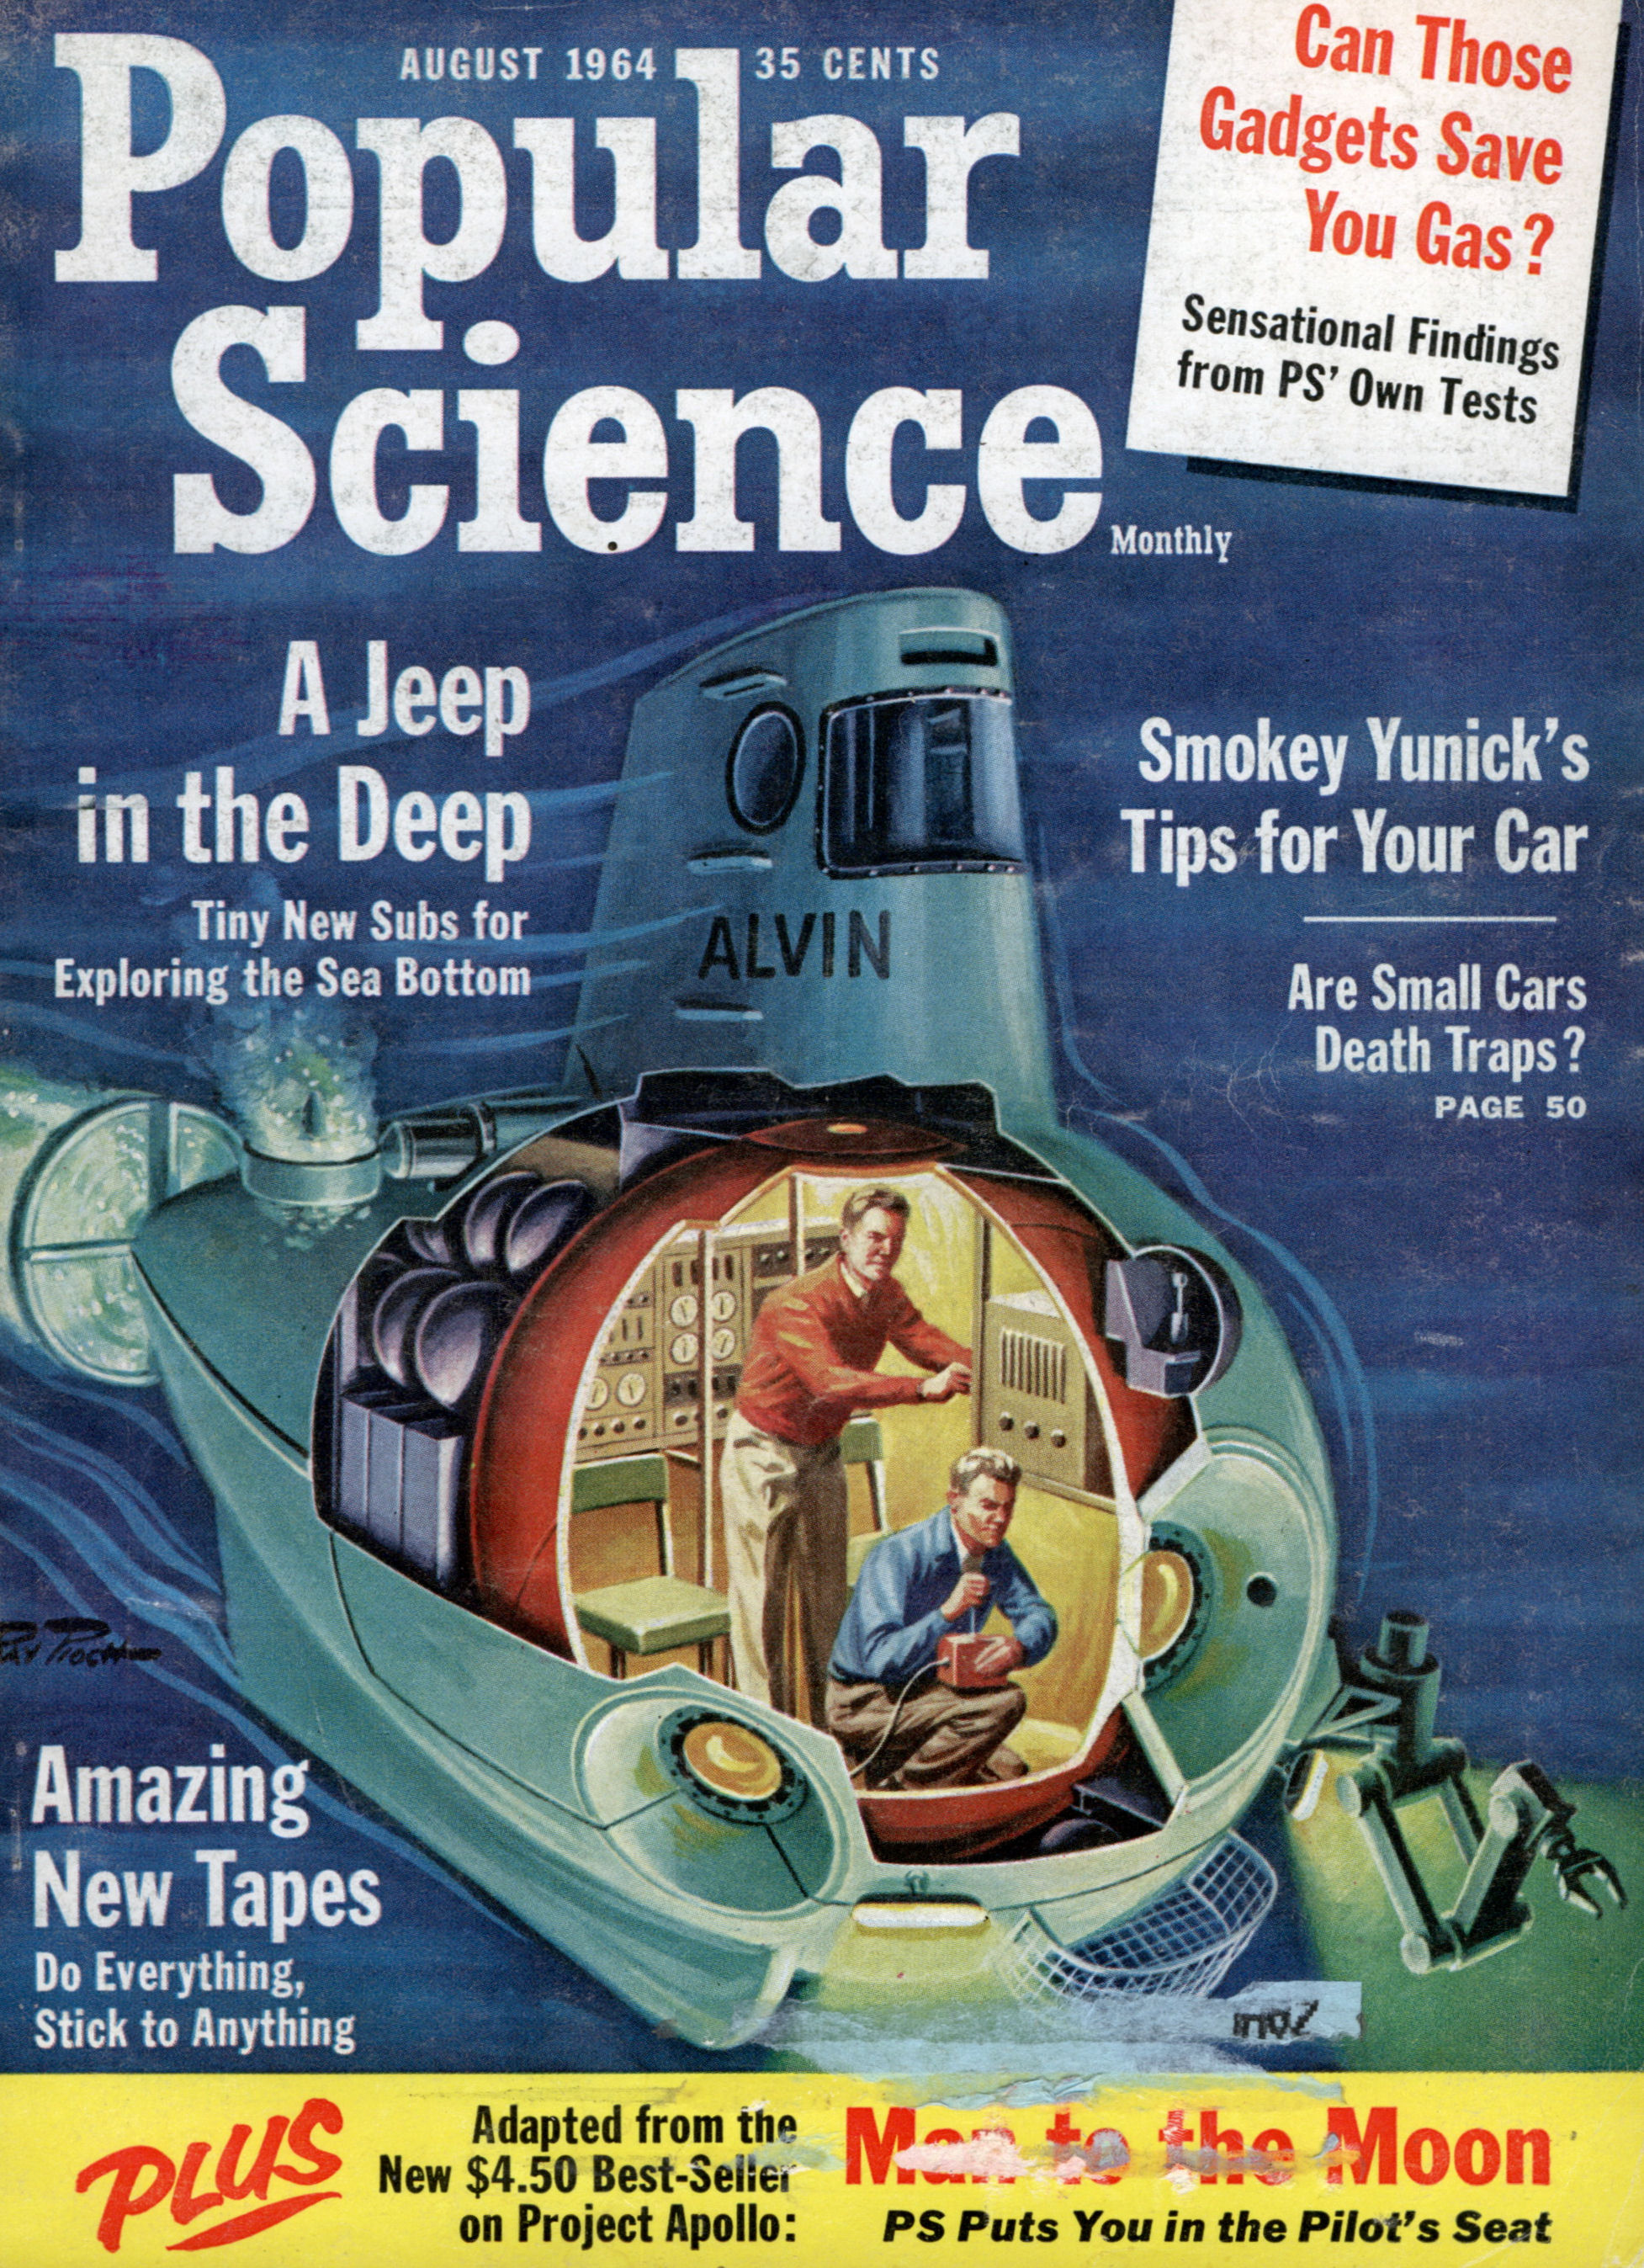 science magazine 1964 popular magazines future covers 1960s early issue mechanics space popularscience mechanix fiction illustrations modern sci mags were